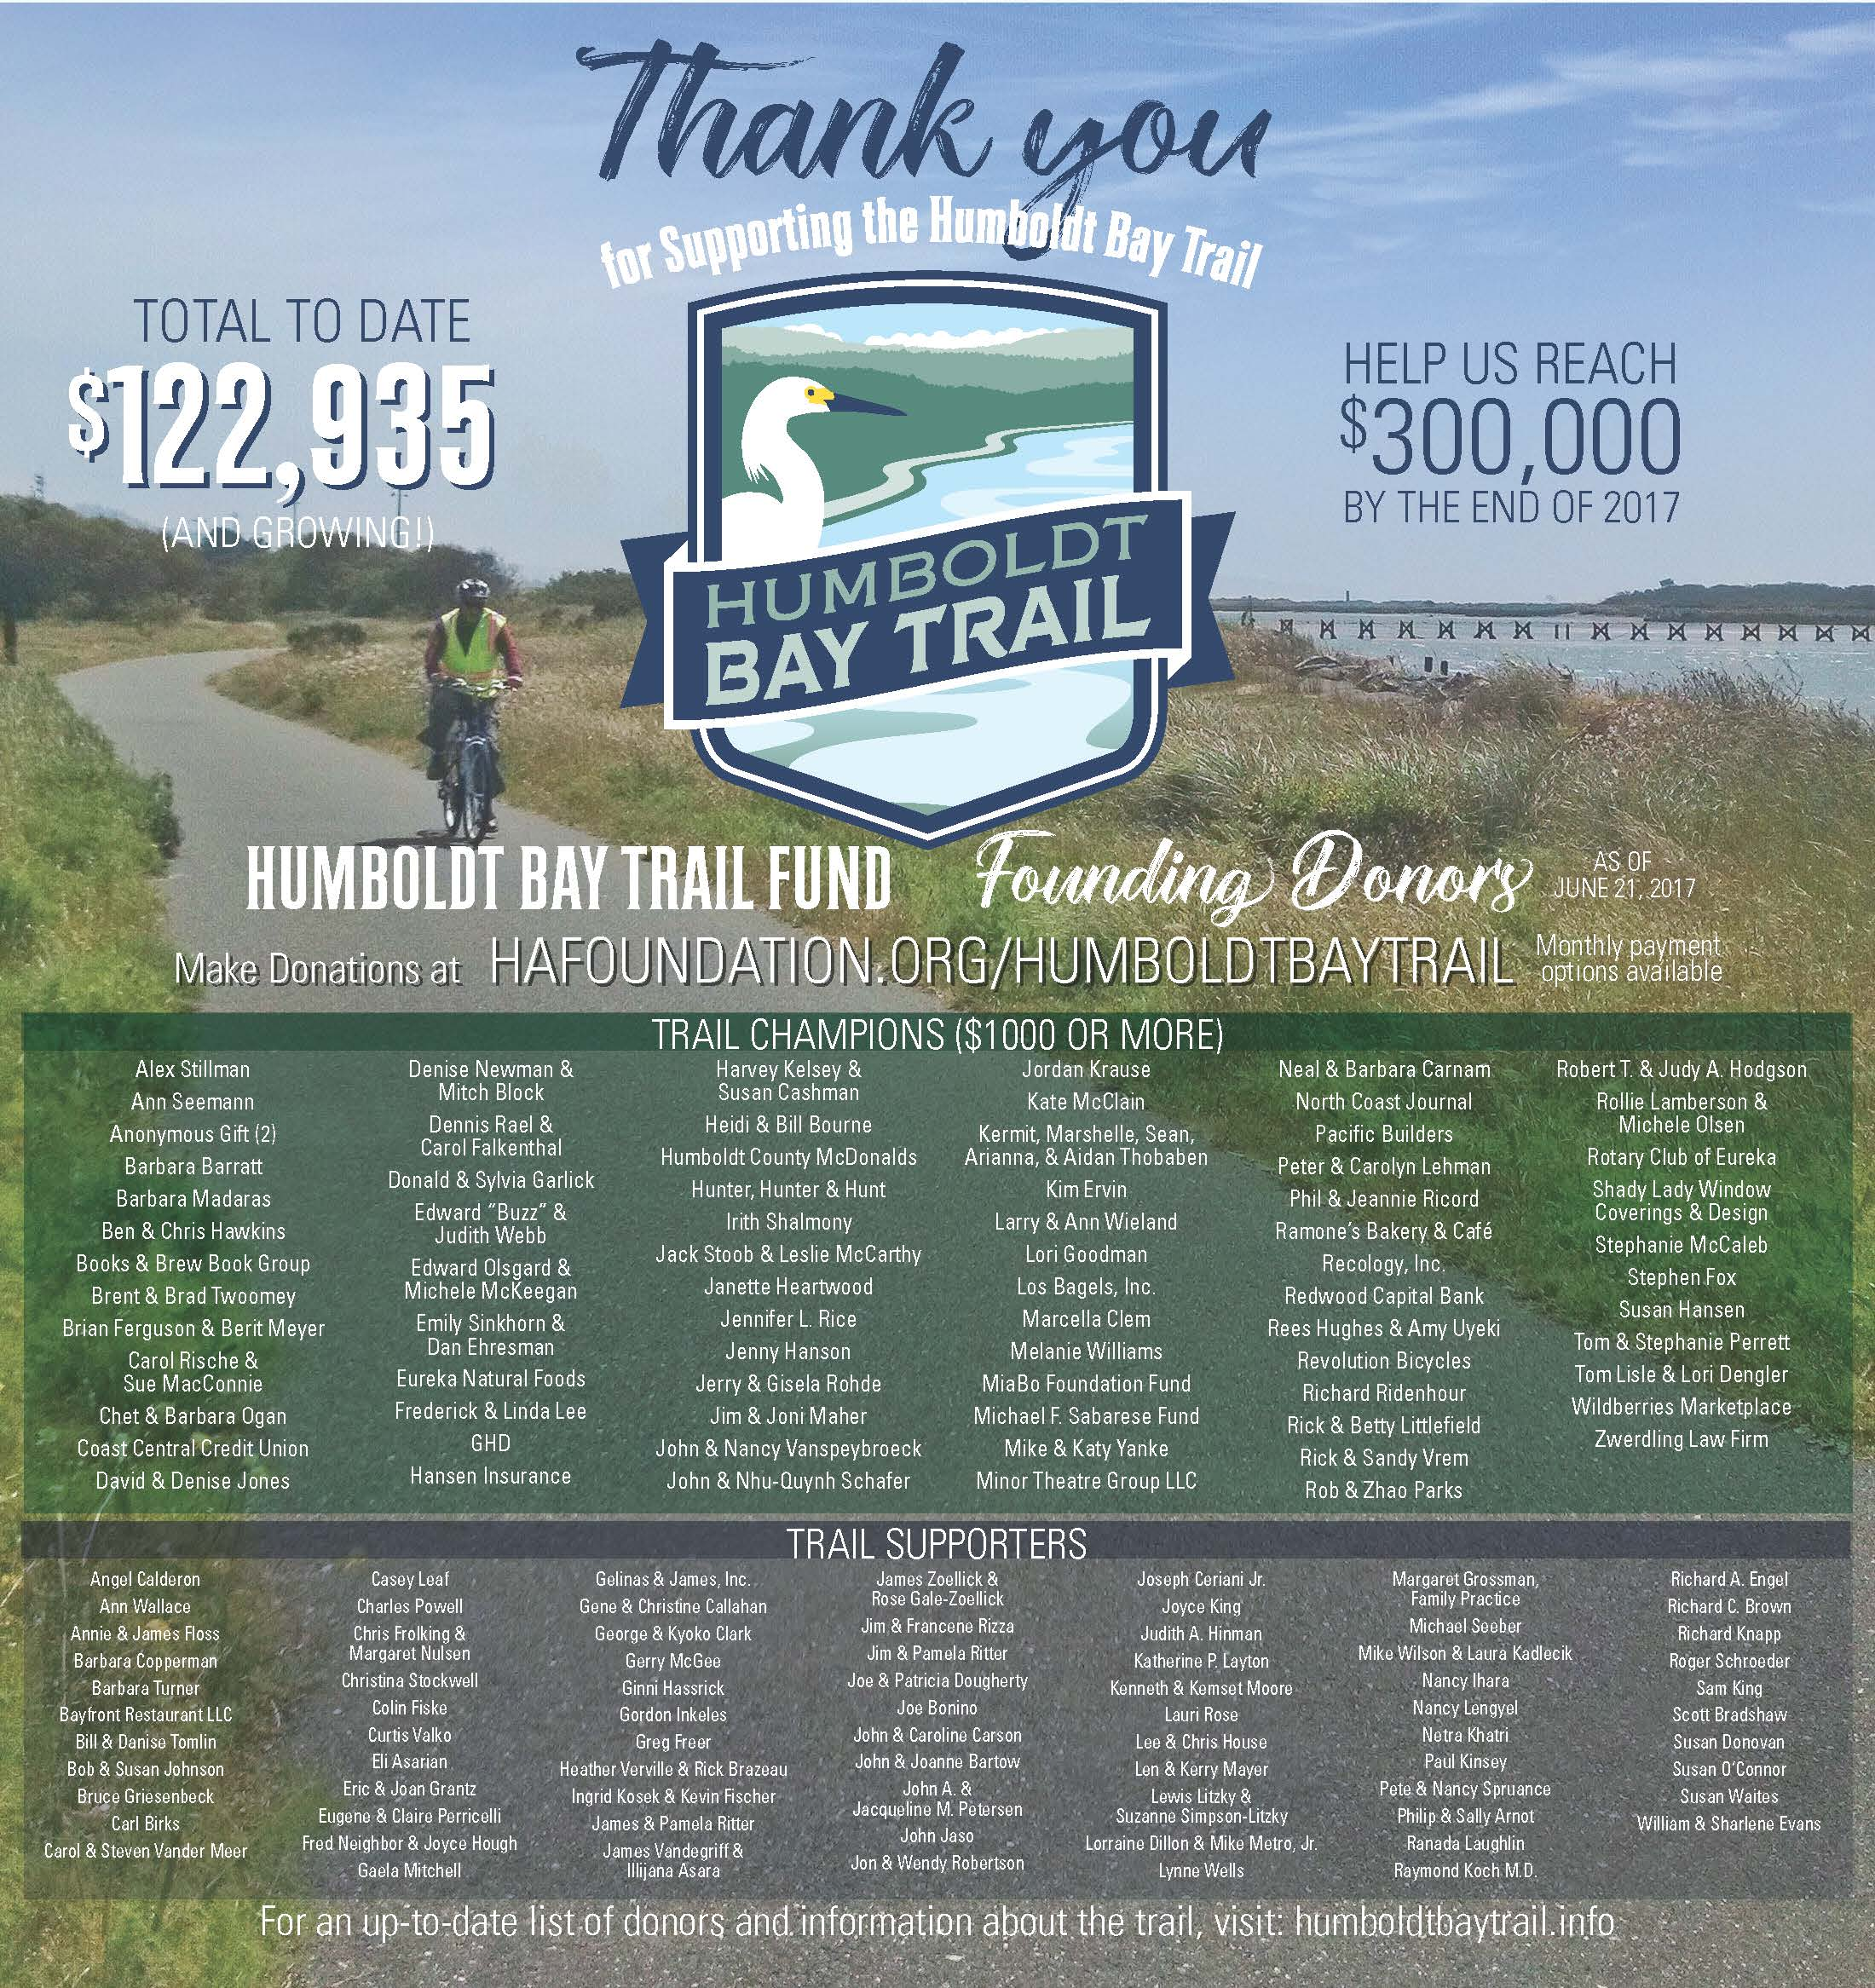 Poster thanking donors to the Humboldt Bay Trail Fund as of June 21, 2017